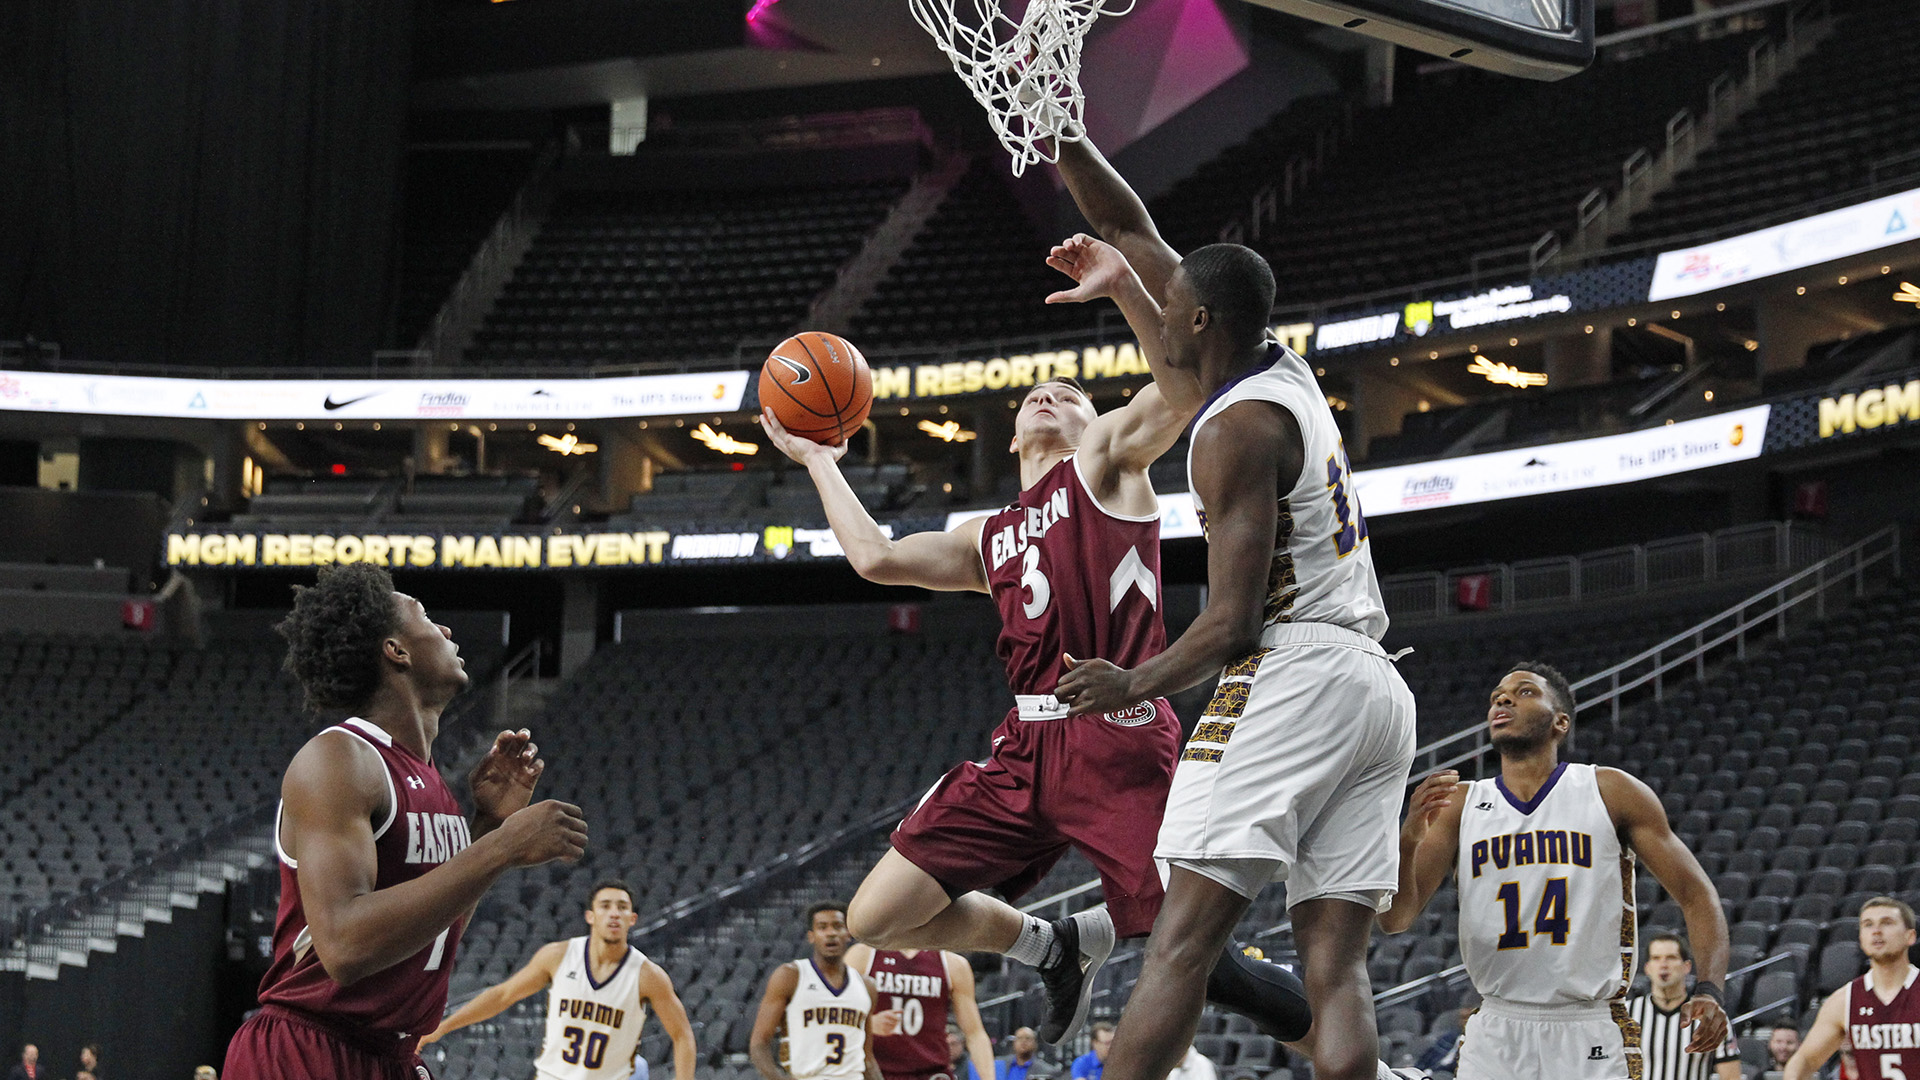 EKU Falls to Prairie View A&M, 80-70, in MGM Resorts Main Event